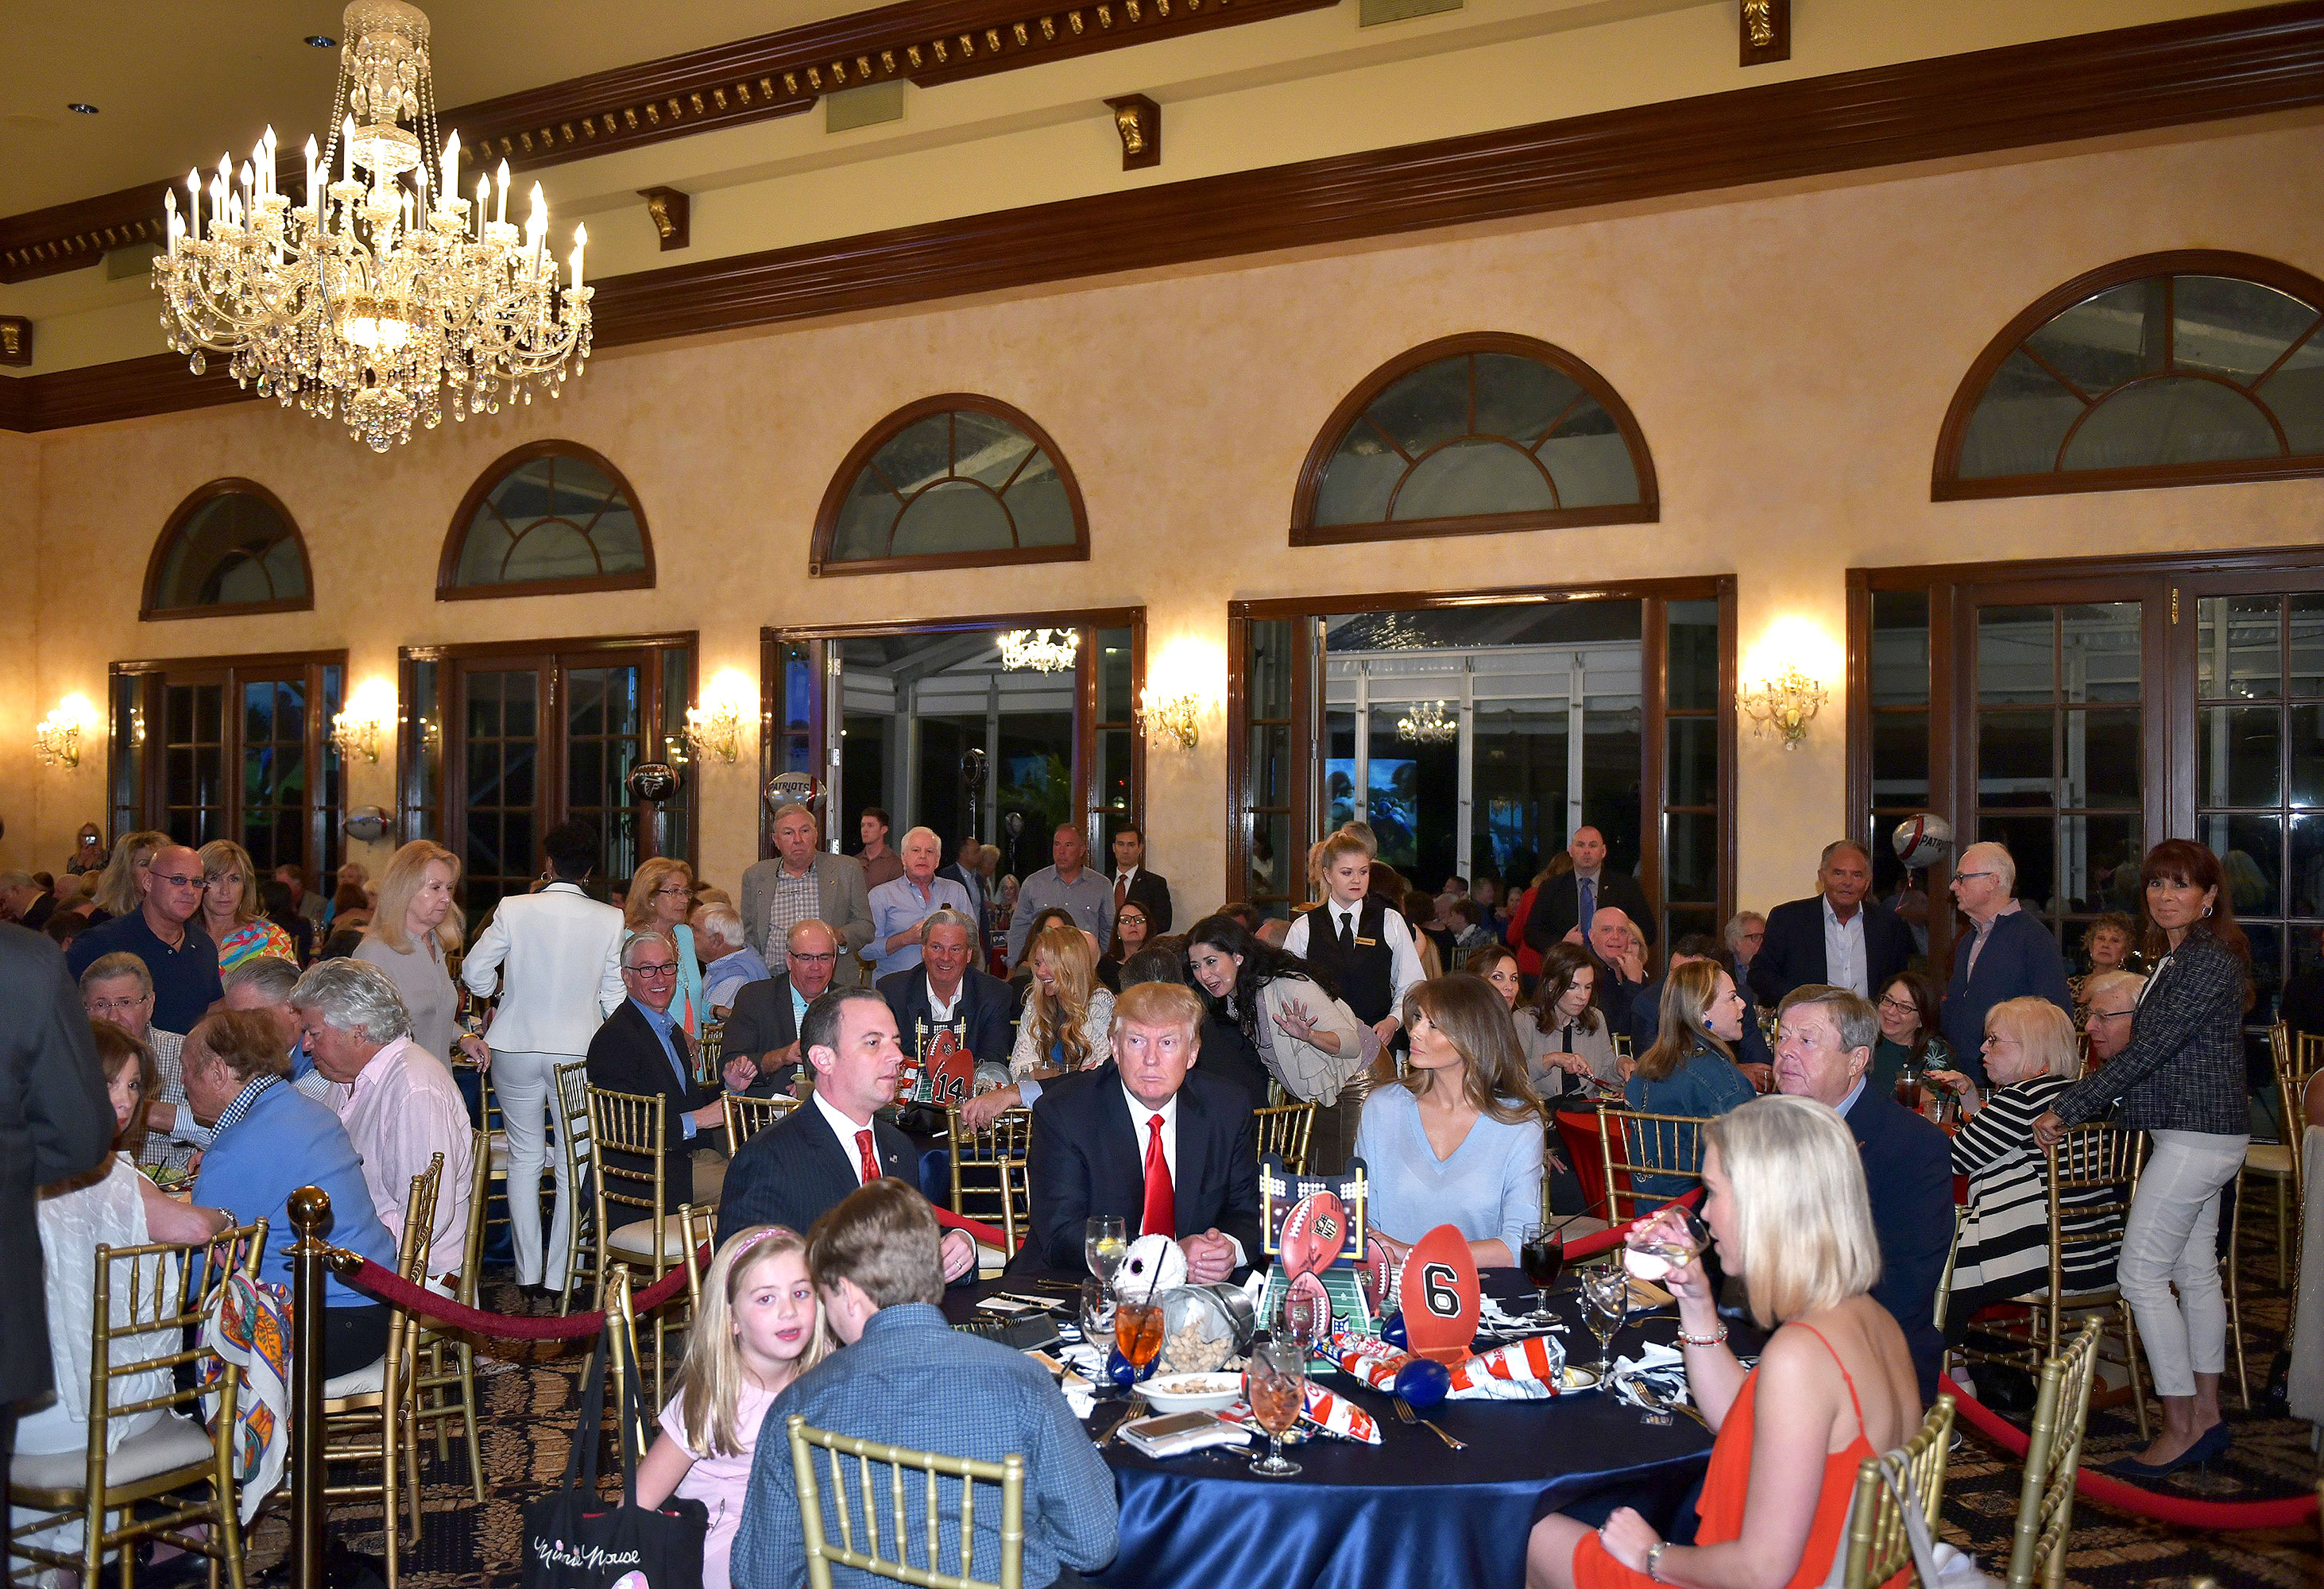 Donald Trump watches the Super Bowl with First Lady Melania Trump (R) and White House Chief of Staff Reince Priebus (L) at Trump International Golf Club Palm Beach in West Palm Beach, Florida on February 5, 2017.